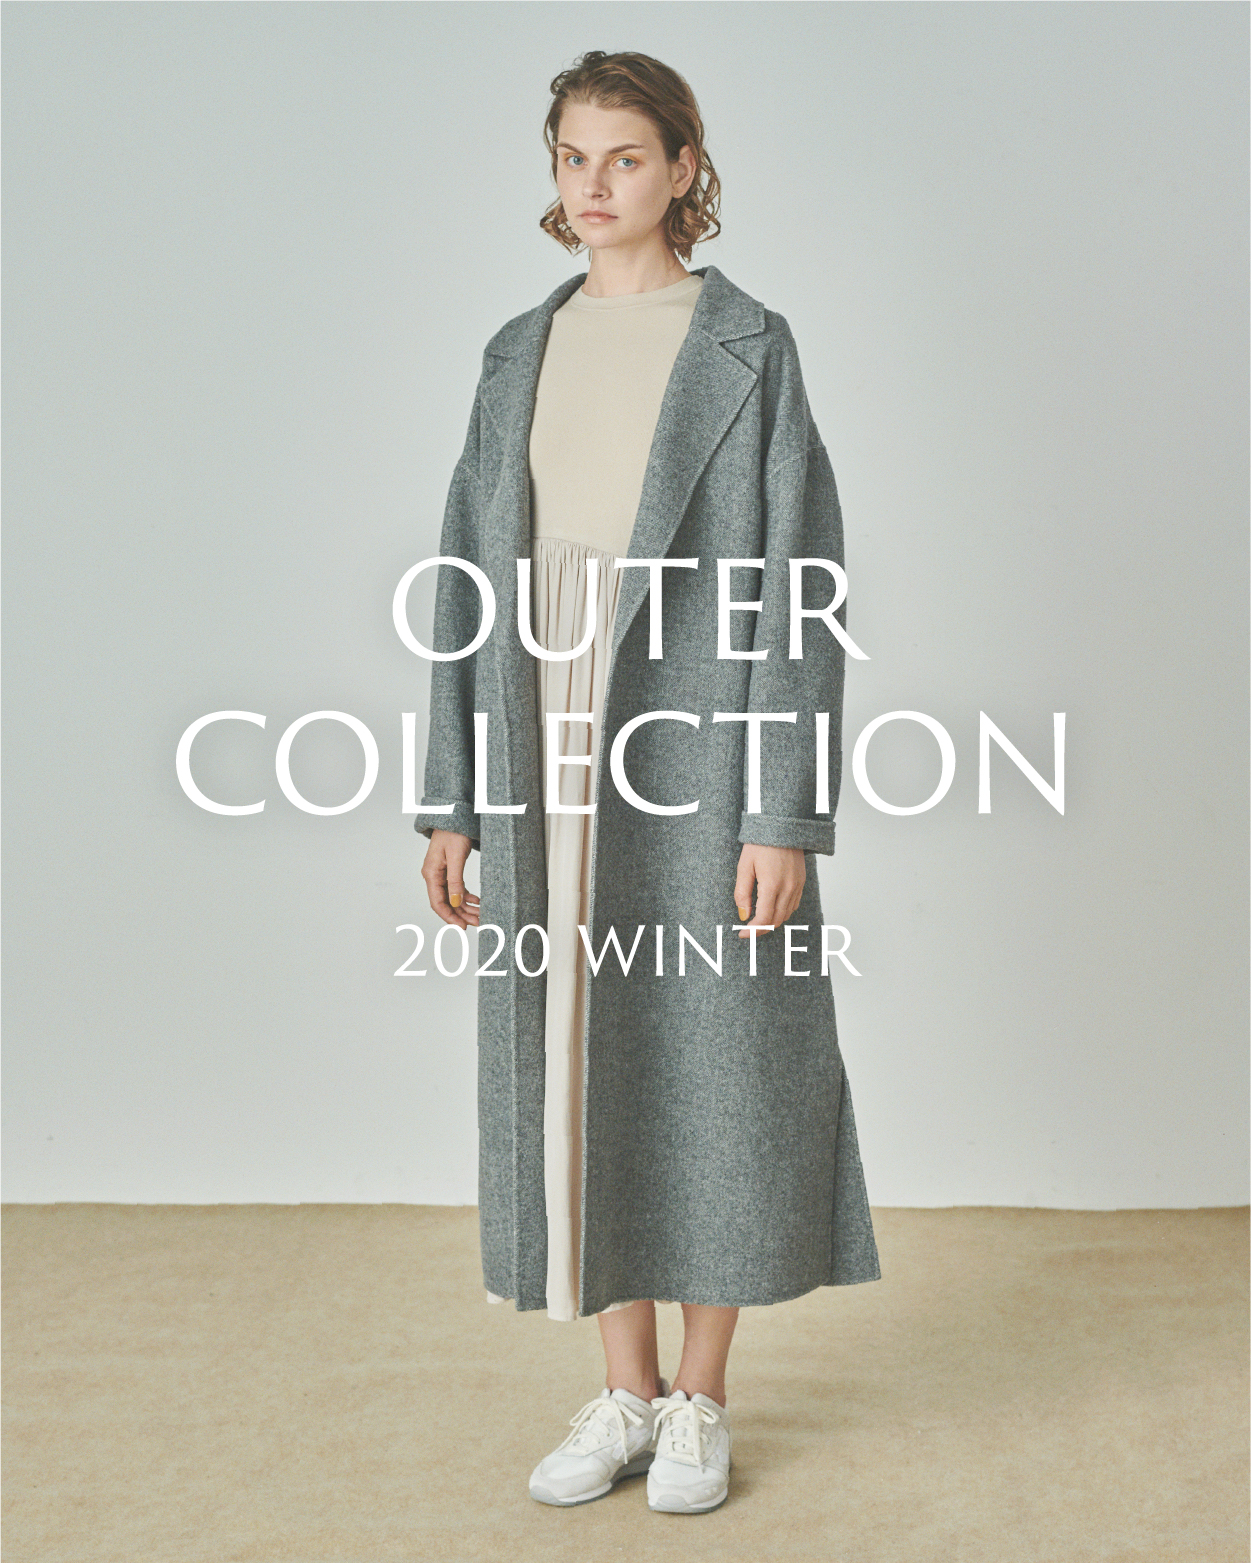 OUTER COLLECTION 2020 WINTER